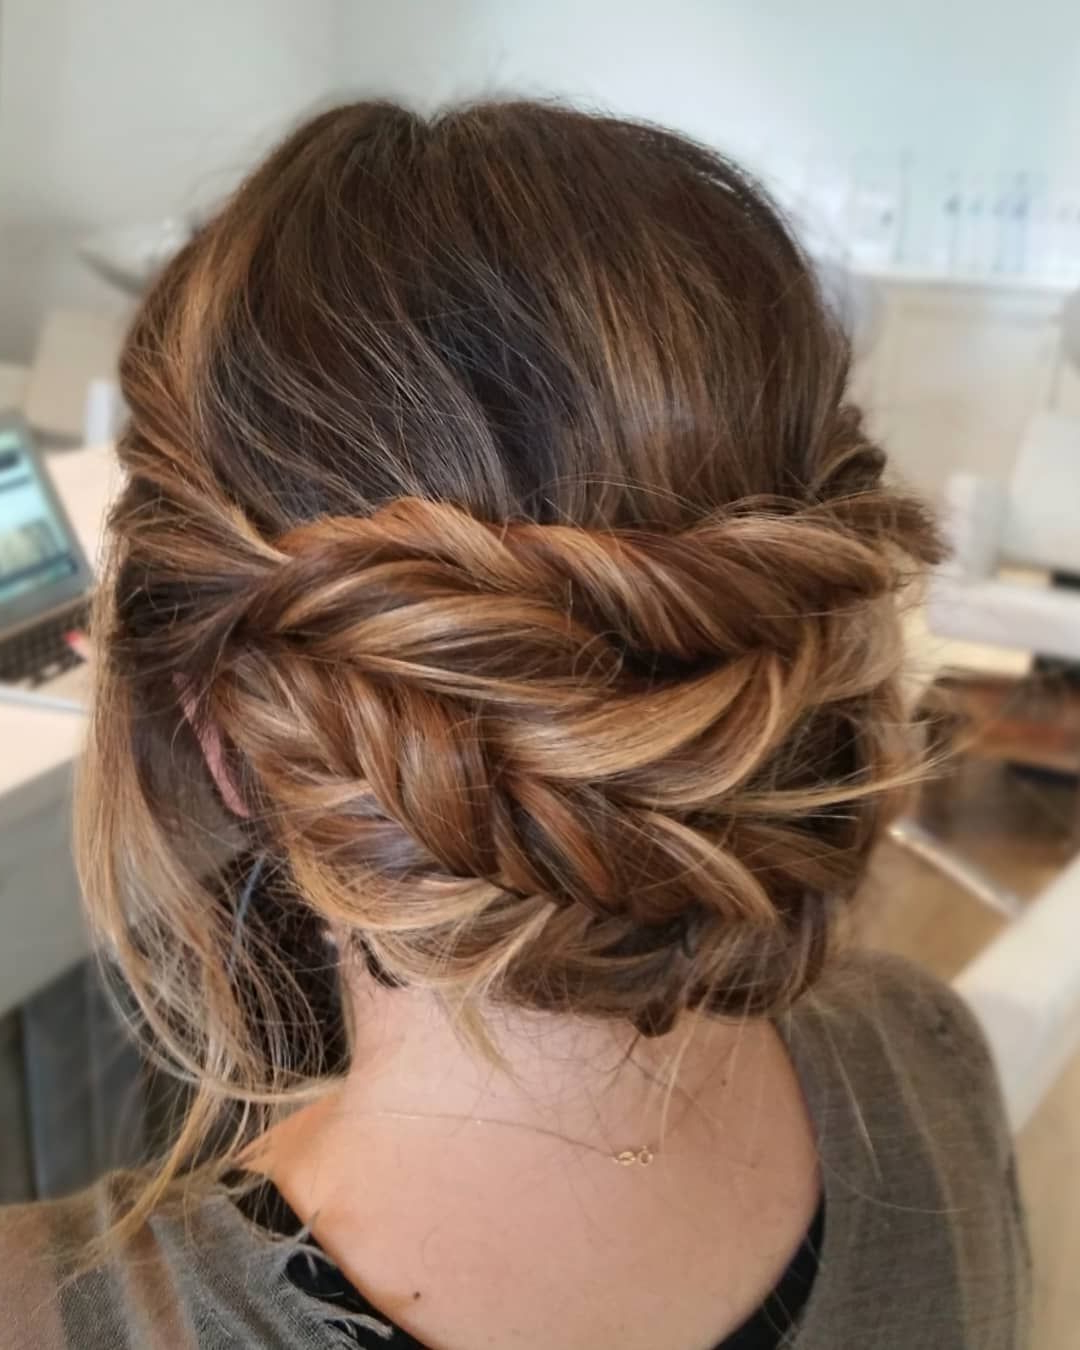 Beautiful Whimsical Braided Updo (View 2 of 20)